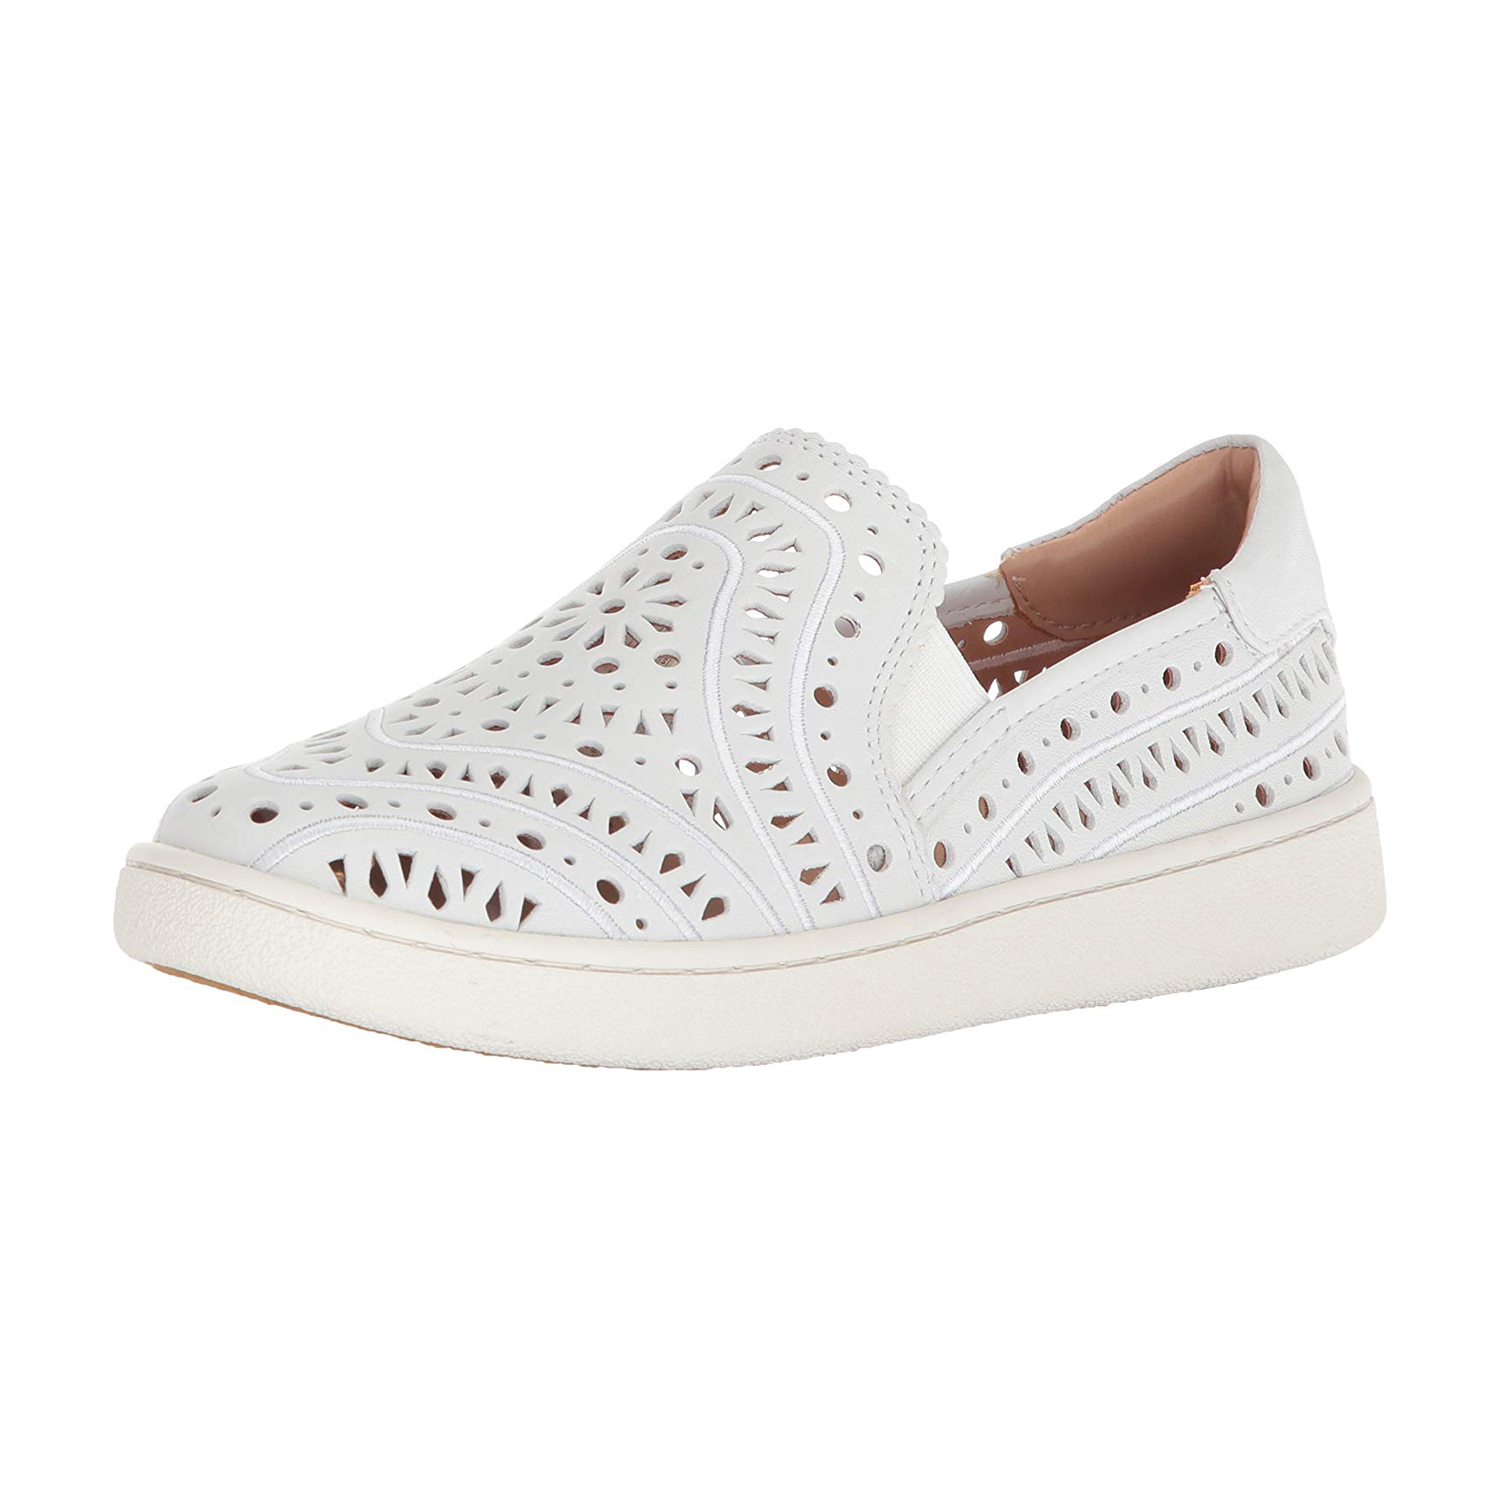 20 White Sneakers You'll Want to Live in This Spring and